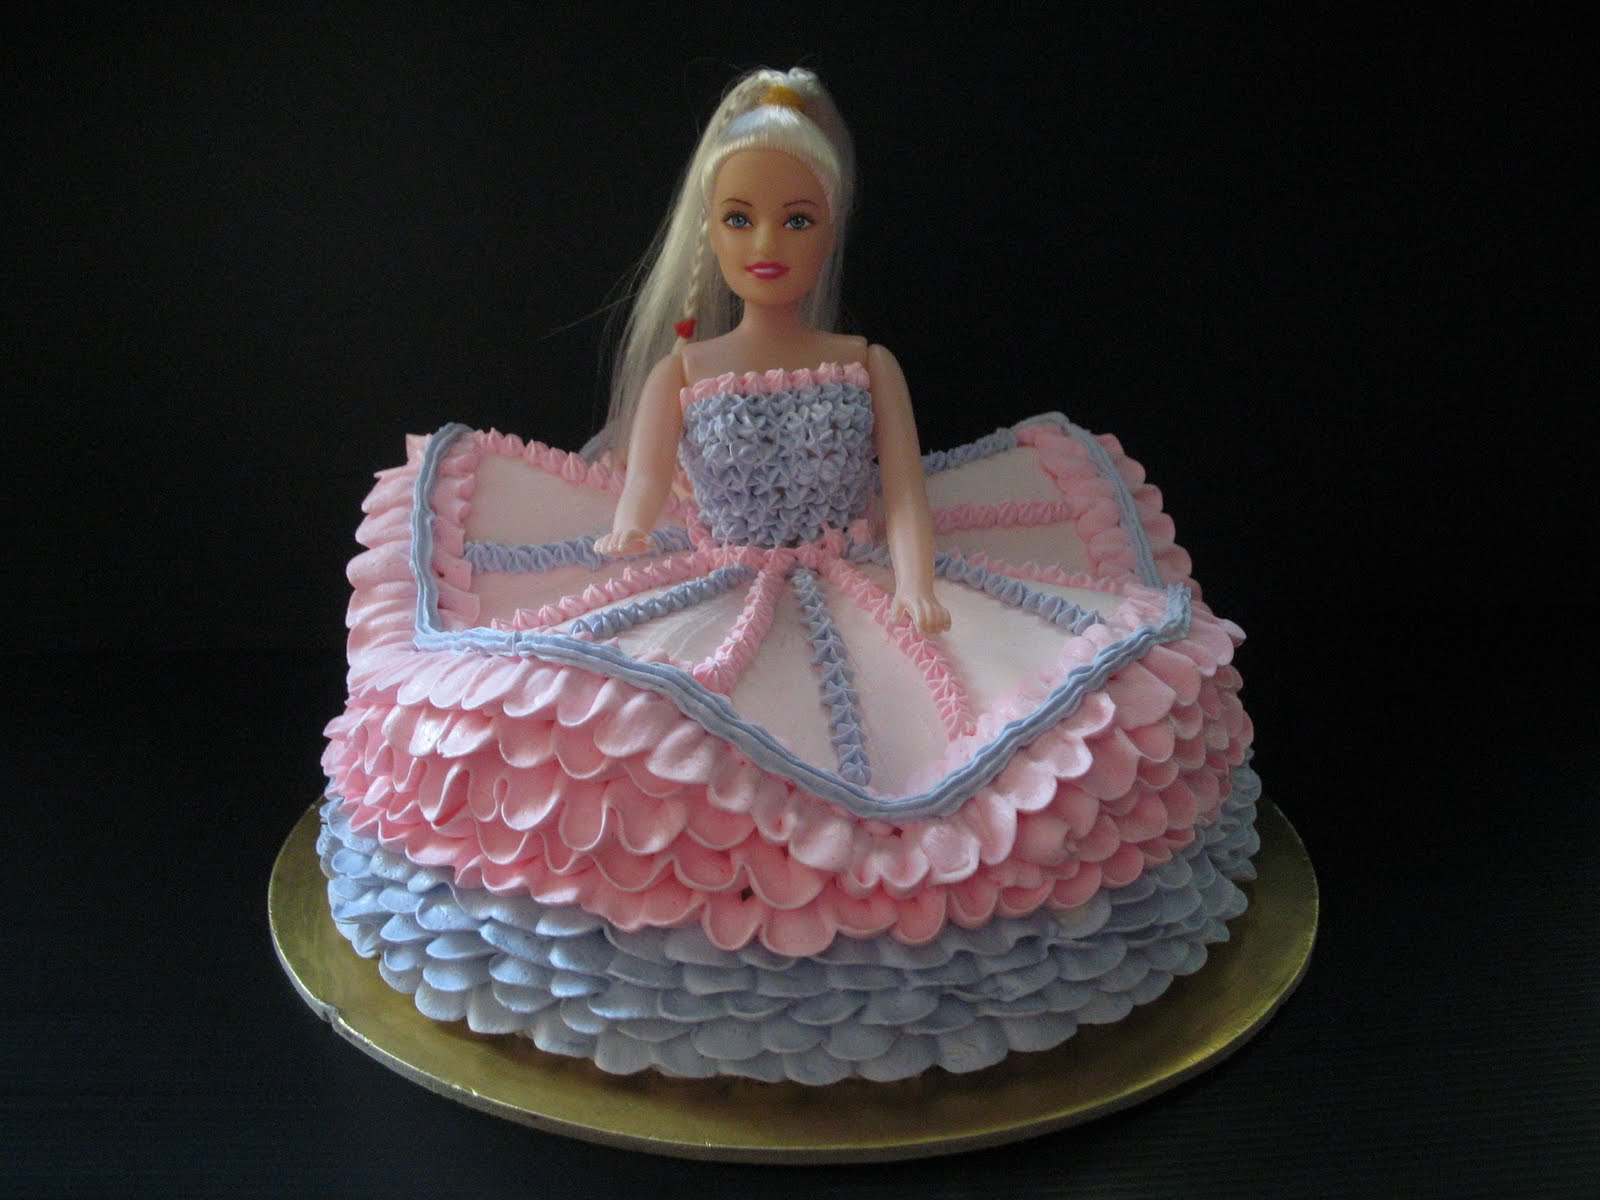 Princess Cake Design : Princess Cake heydanixo